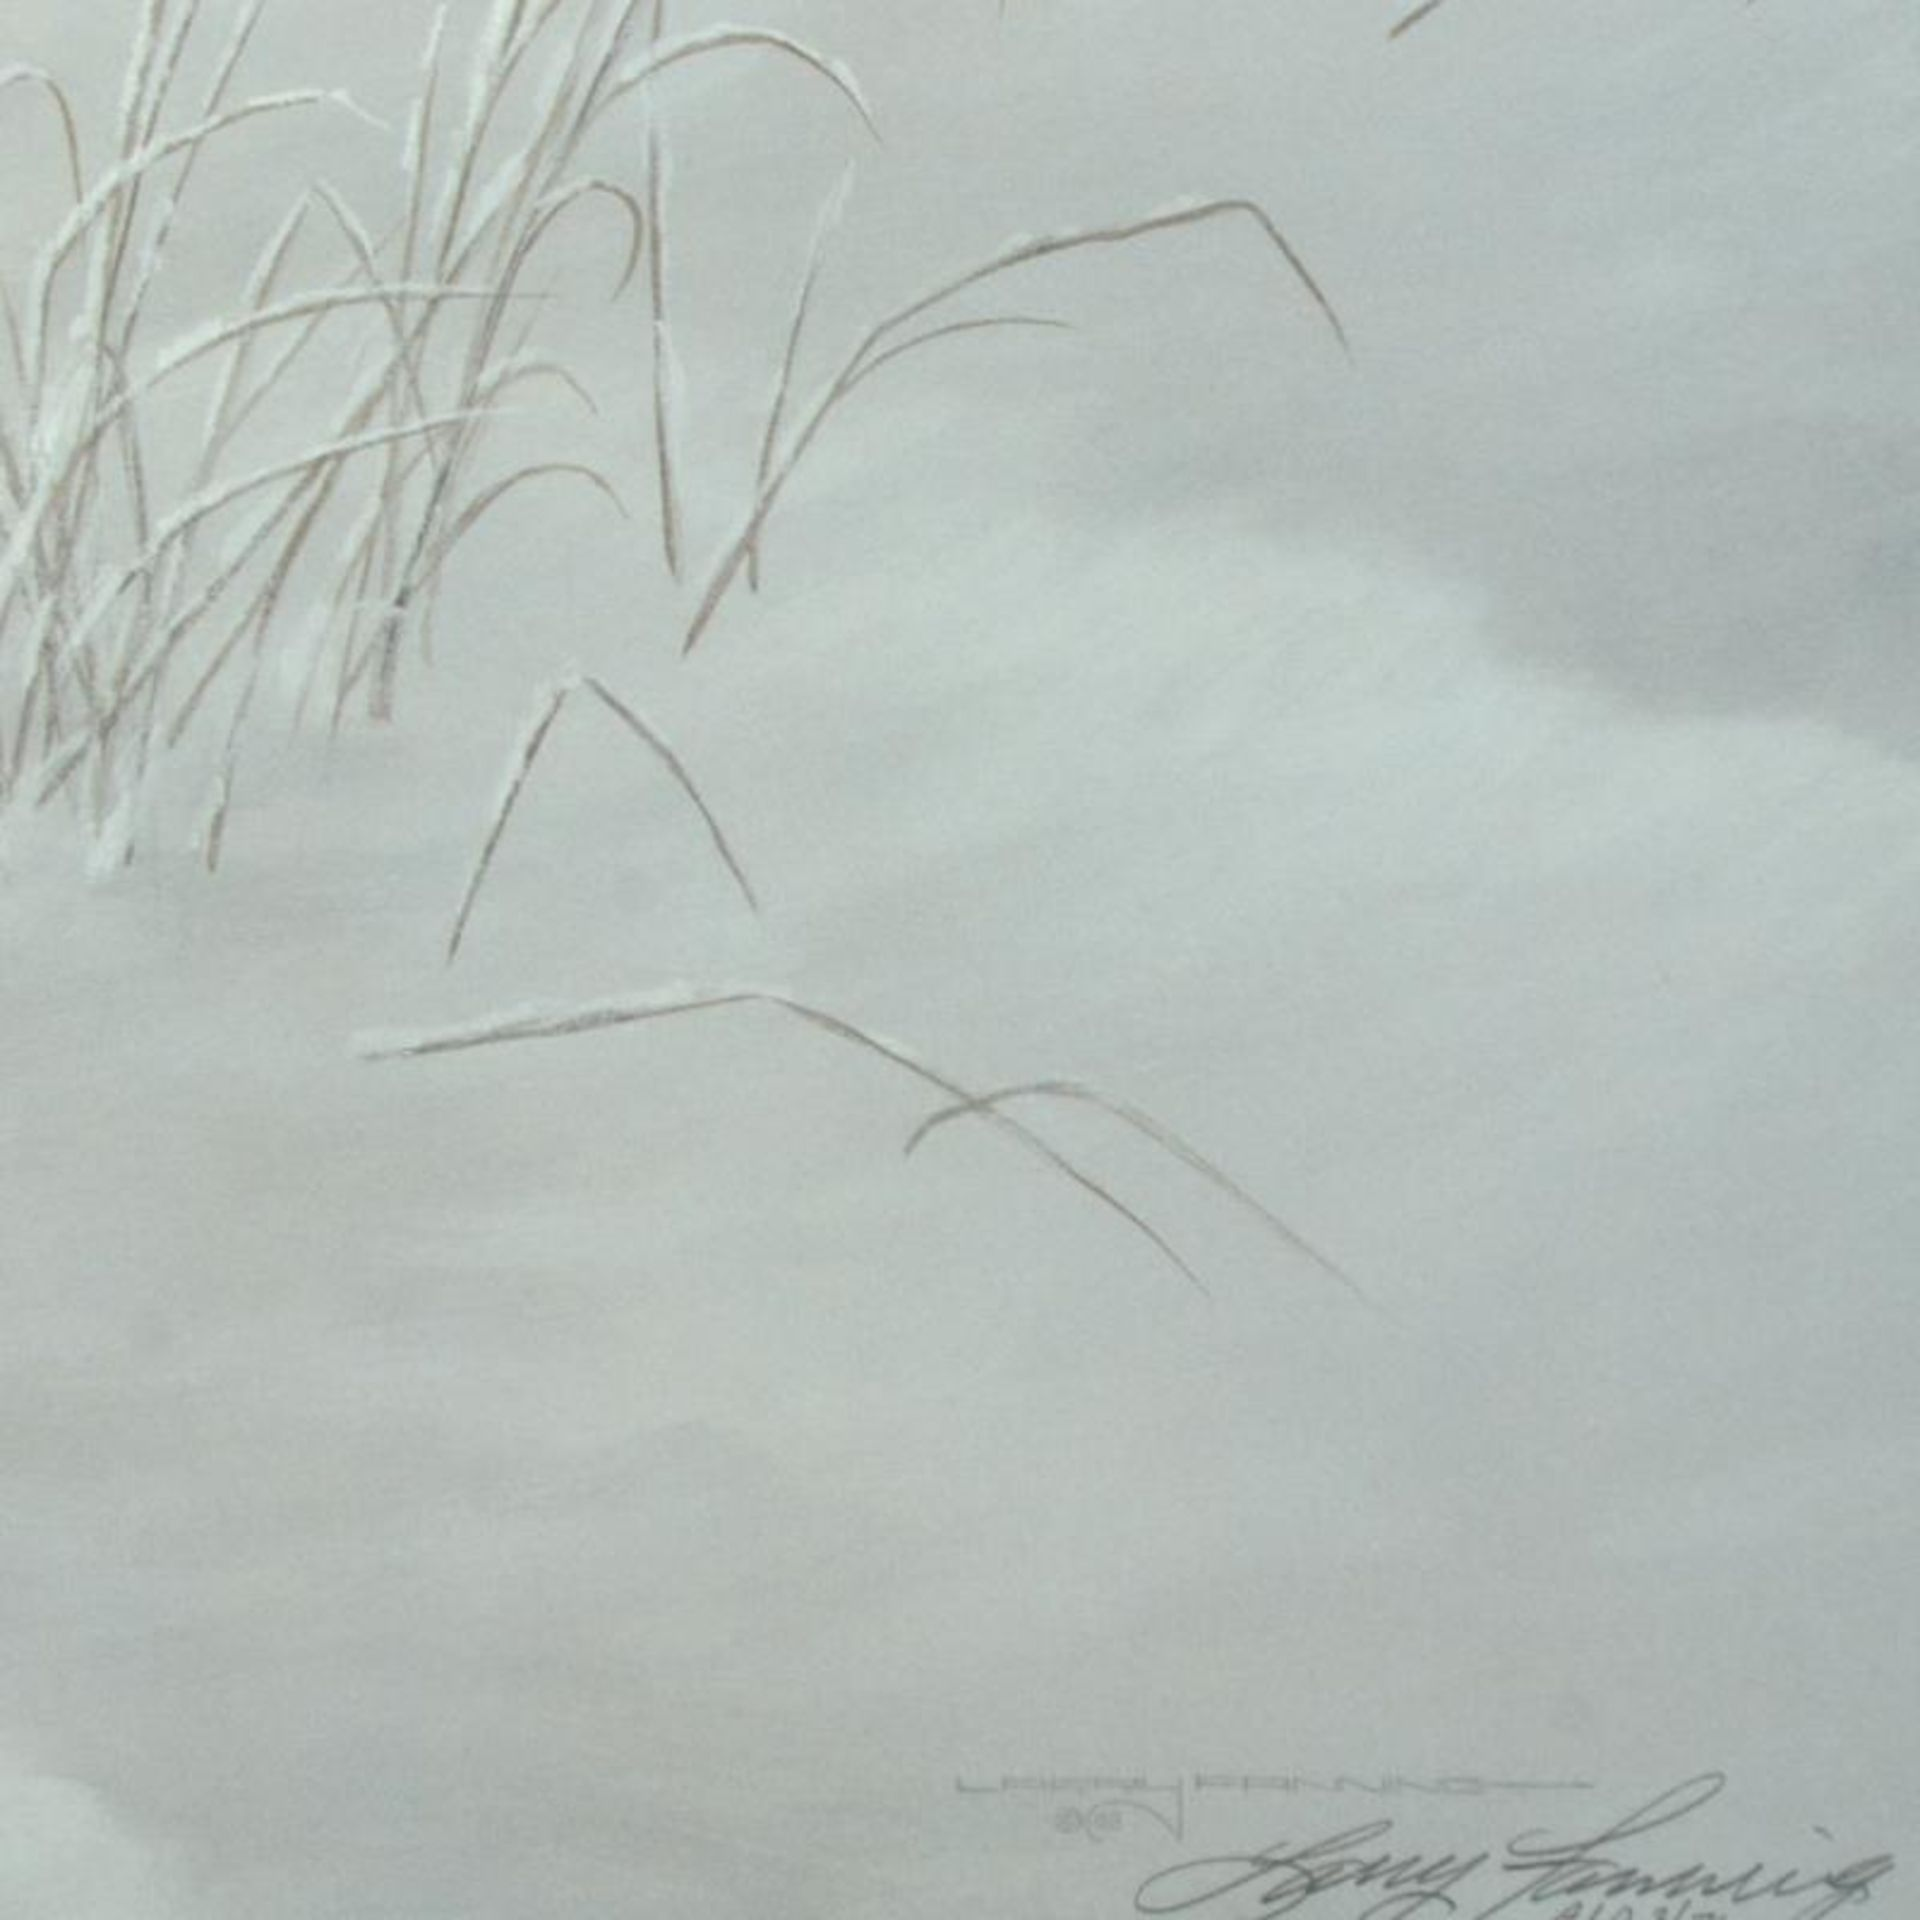 """Larry Fanning (1938-2014), """"Winter's Lace - Gray Wolves"""" Limited Edition Lithogr - Image 3 of 3"""